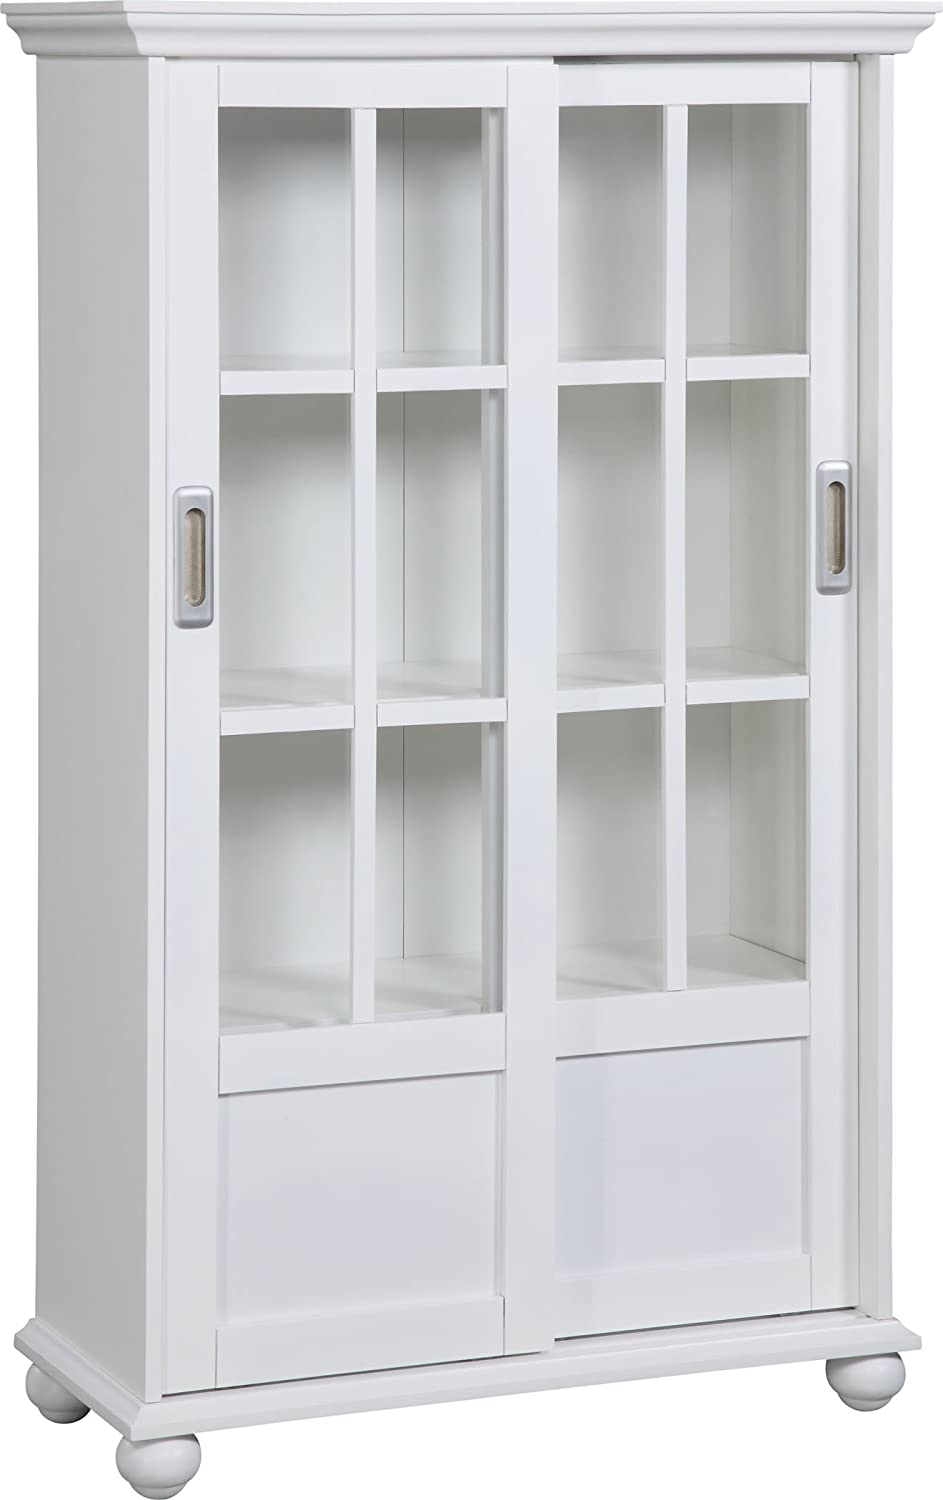 Bookcases with Doors, Seekyt